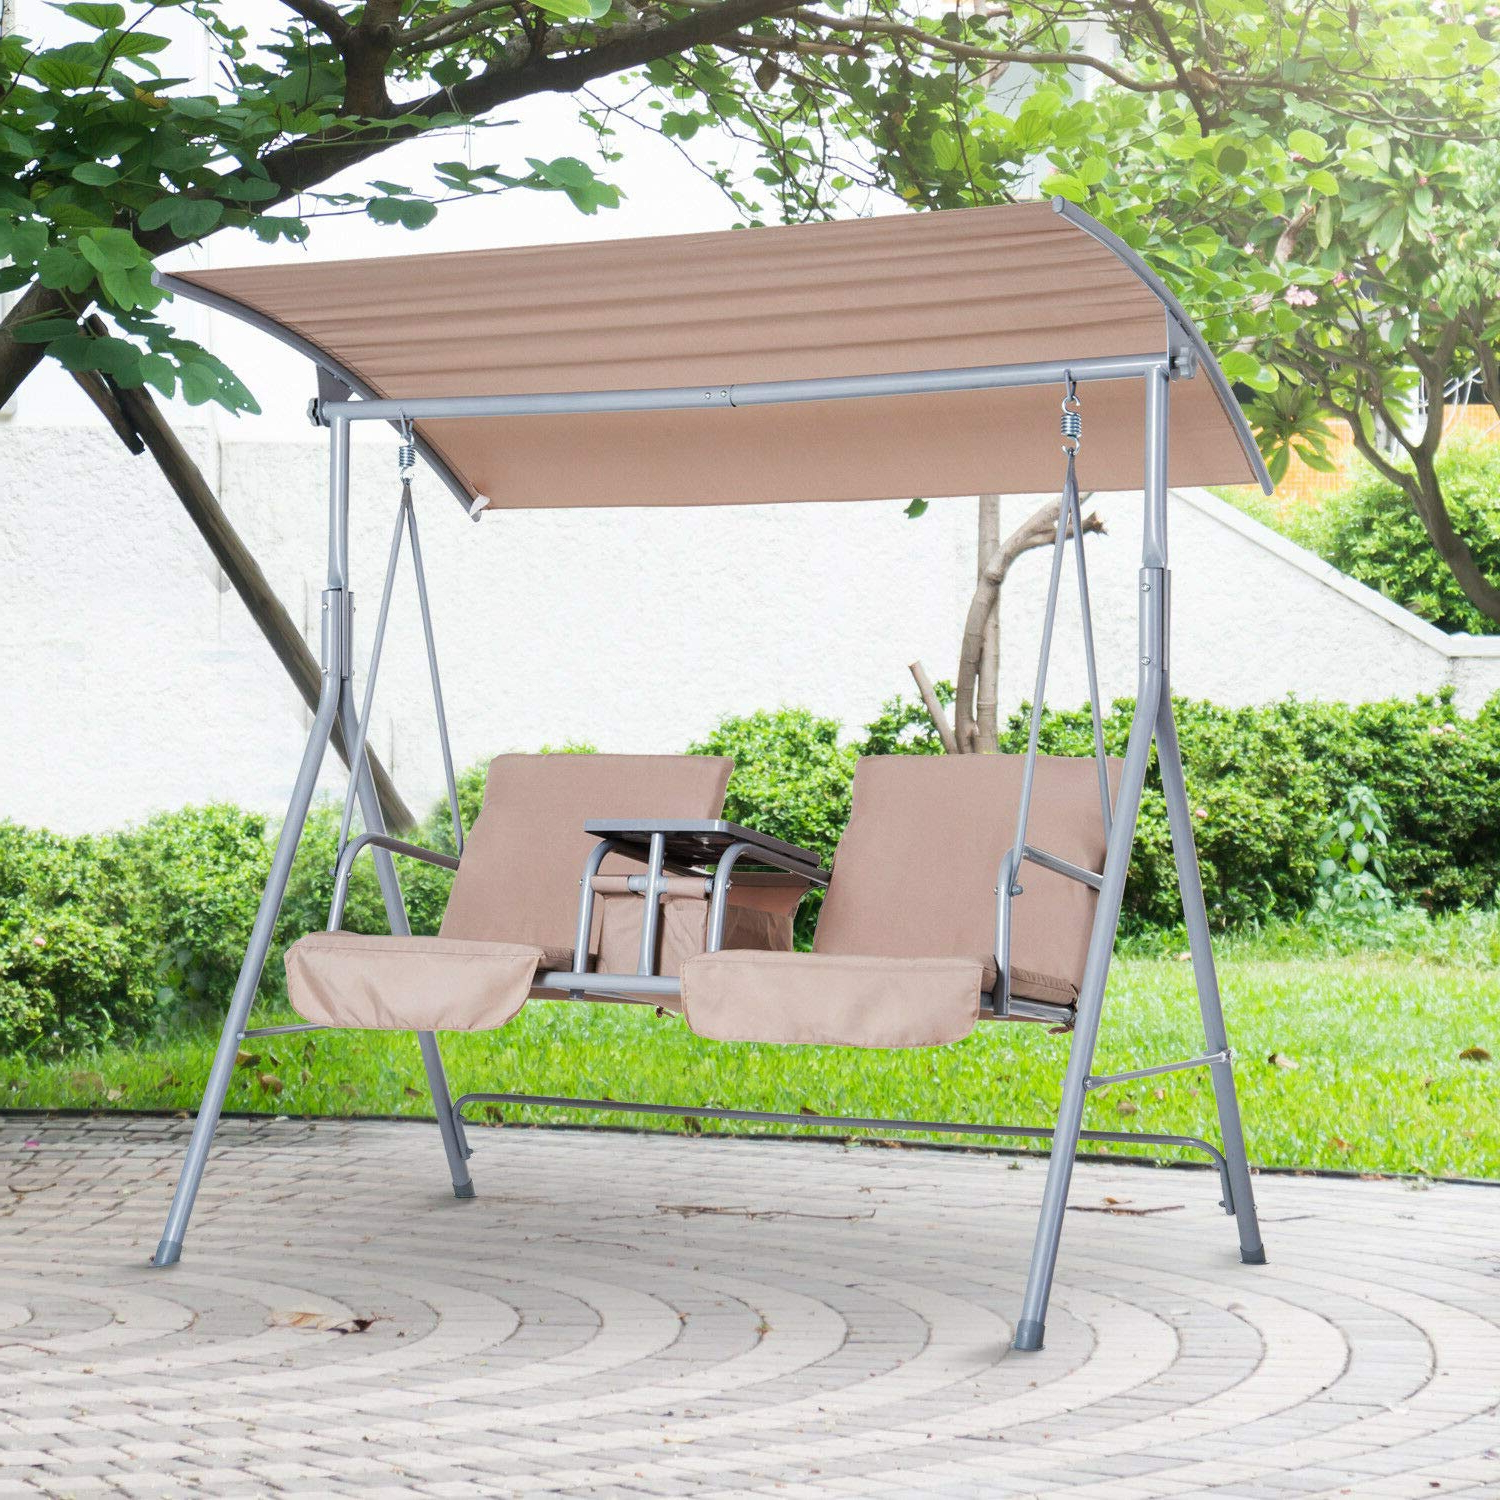 Most Recent Amazon : Mb Campstar 2 Person Outdoor Patio Porch Swing With Regard To Patio Gazebo Porch Canopy Swings (Gallery 8 of 30)